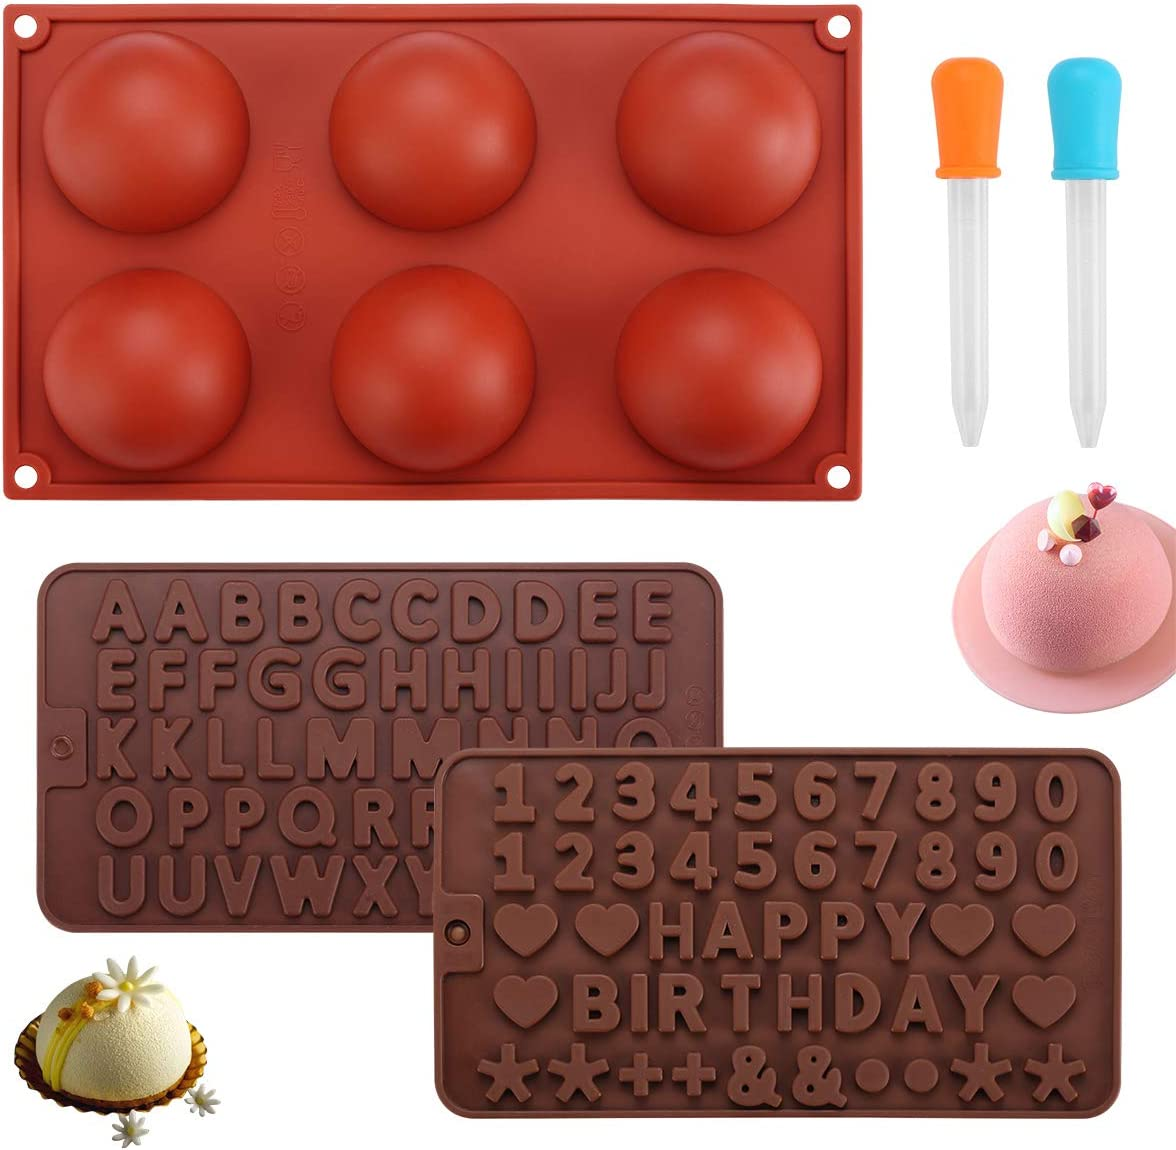 Silicone Molds for Chocolate, Hot Chocolate Bomb Mold with Letter Number Symbols Large 6 Cavity Semi Sphere Silicone Molds for Cake Jelly Cookie Dome Mousse(3 Pack Comes with 2 Droppers)